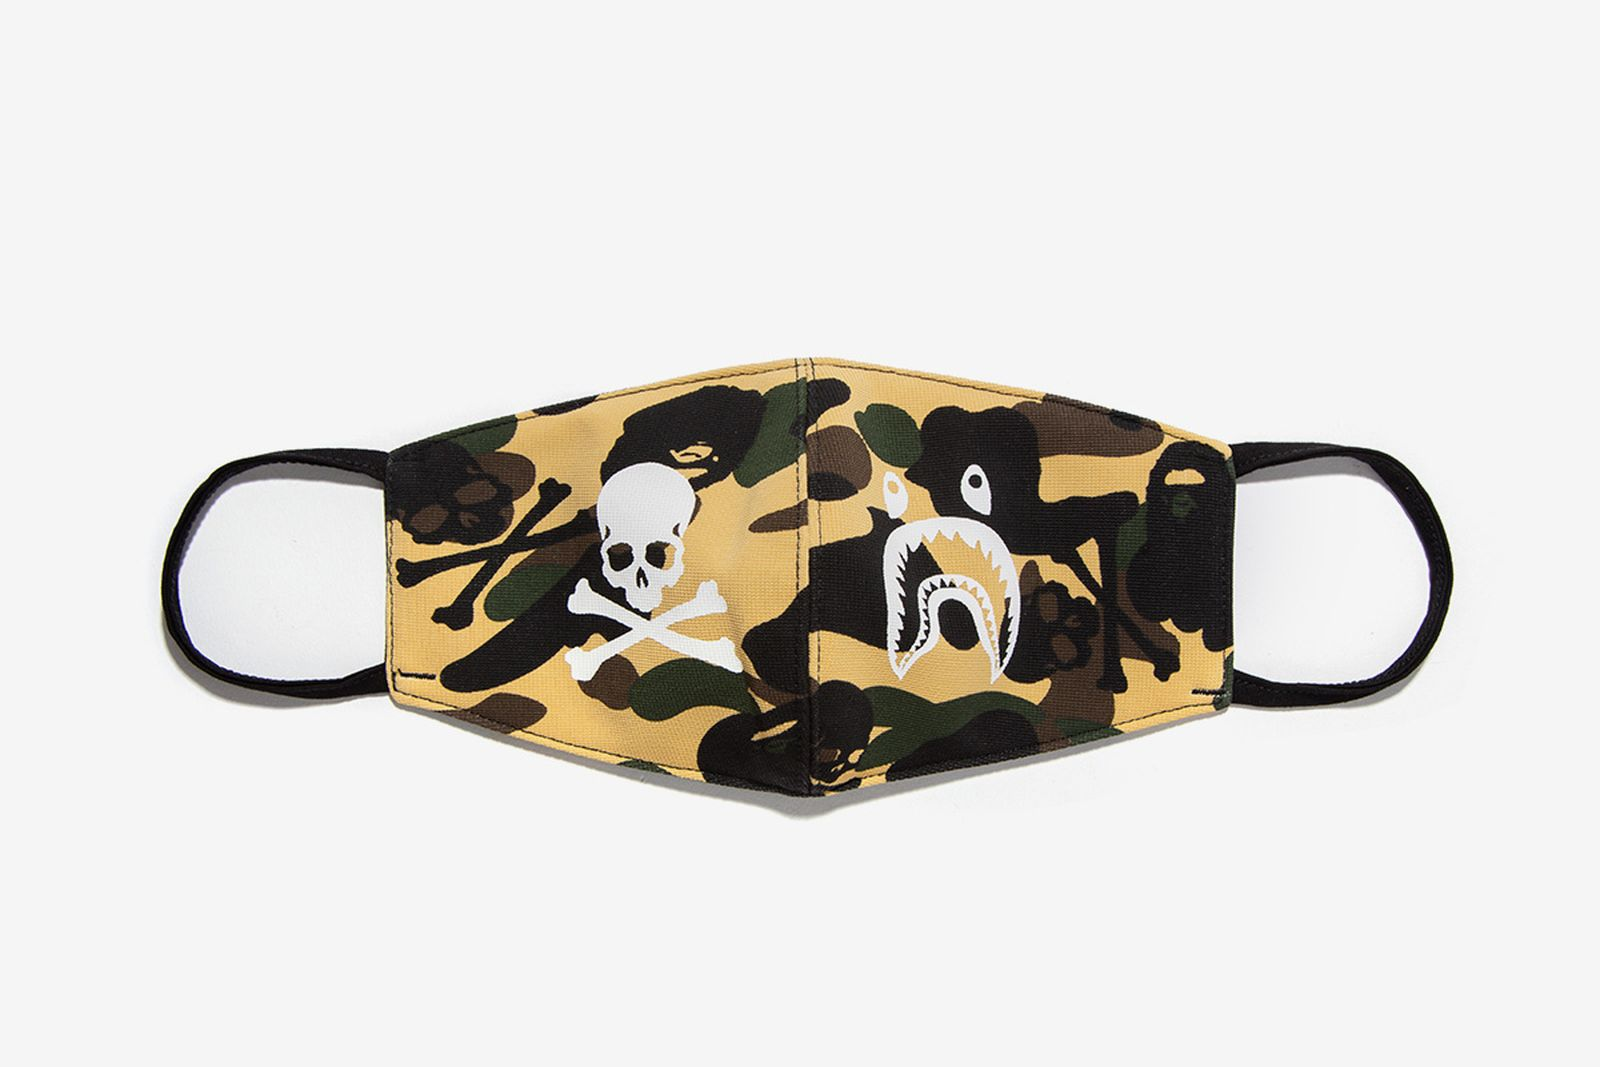 mastermind japan bape ss19 capsule release date price more info A Bathing Ape